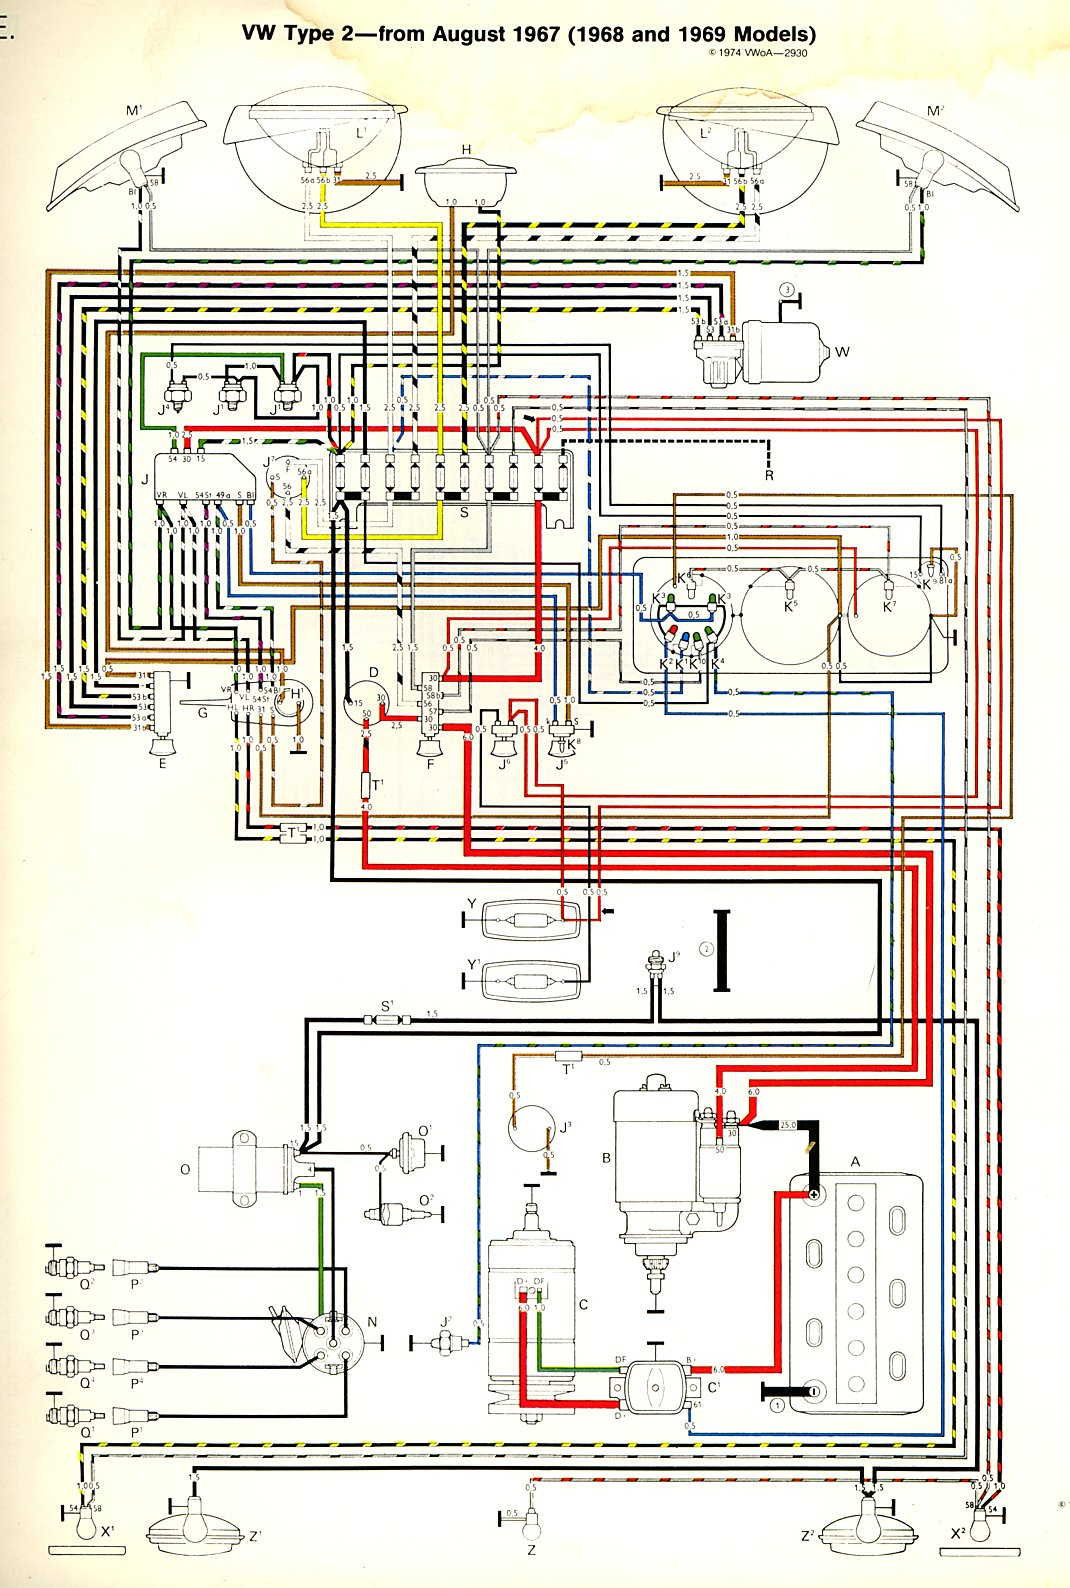 baybus_6869a 1968 69 bus wiring diagram thegoldenbug com find wiring diagram for 87 ford f 150 at honlapkeszites.co